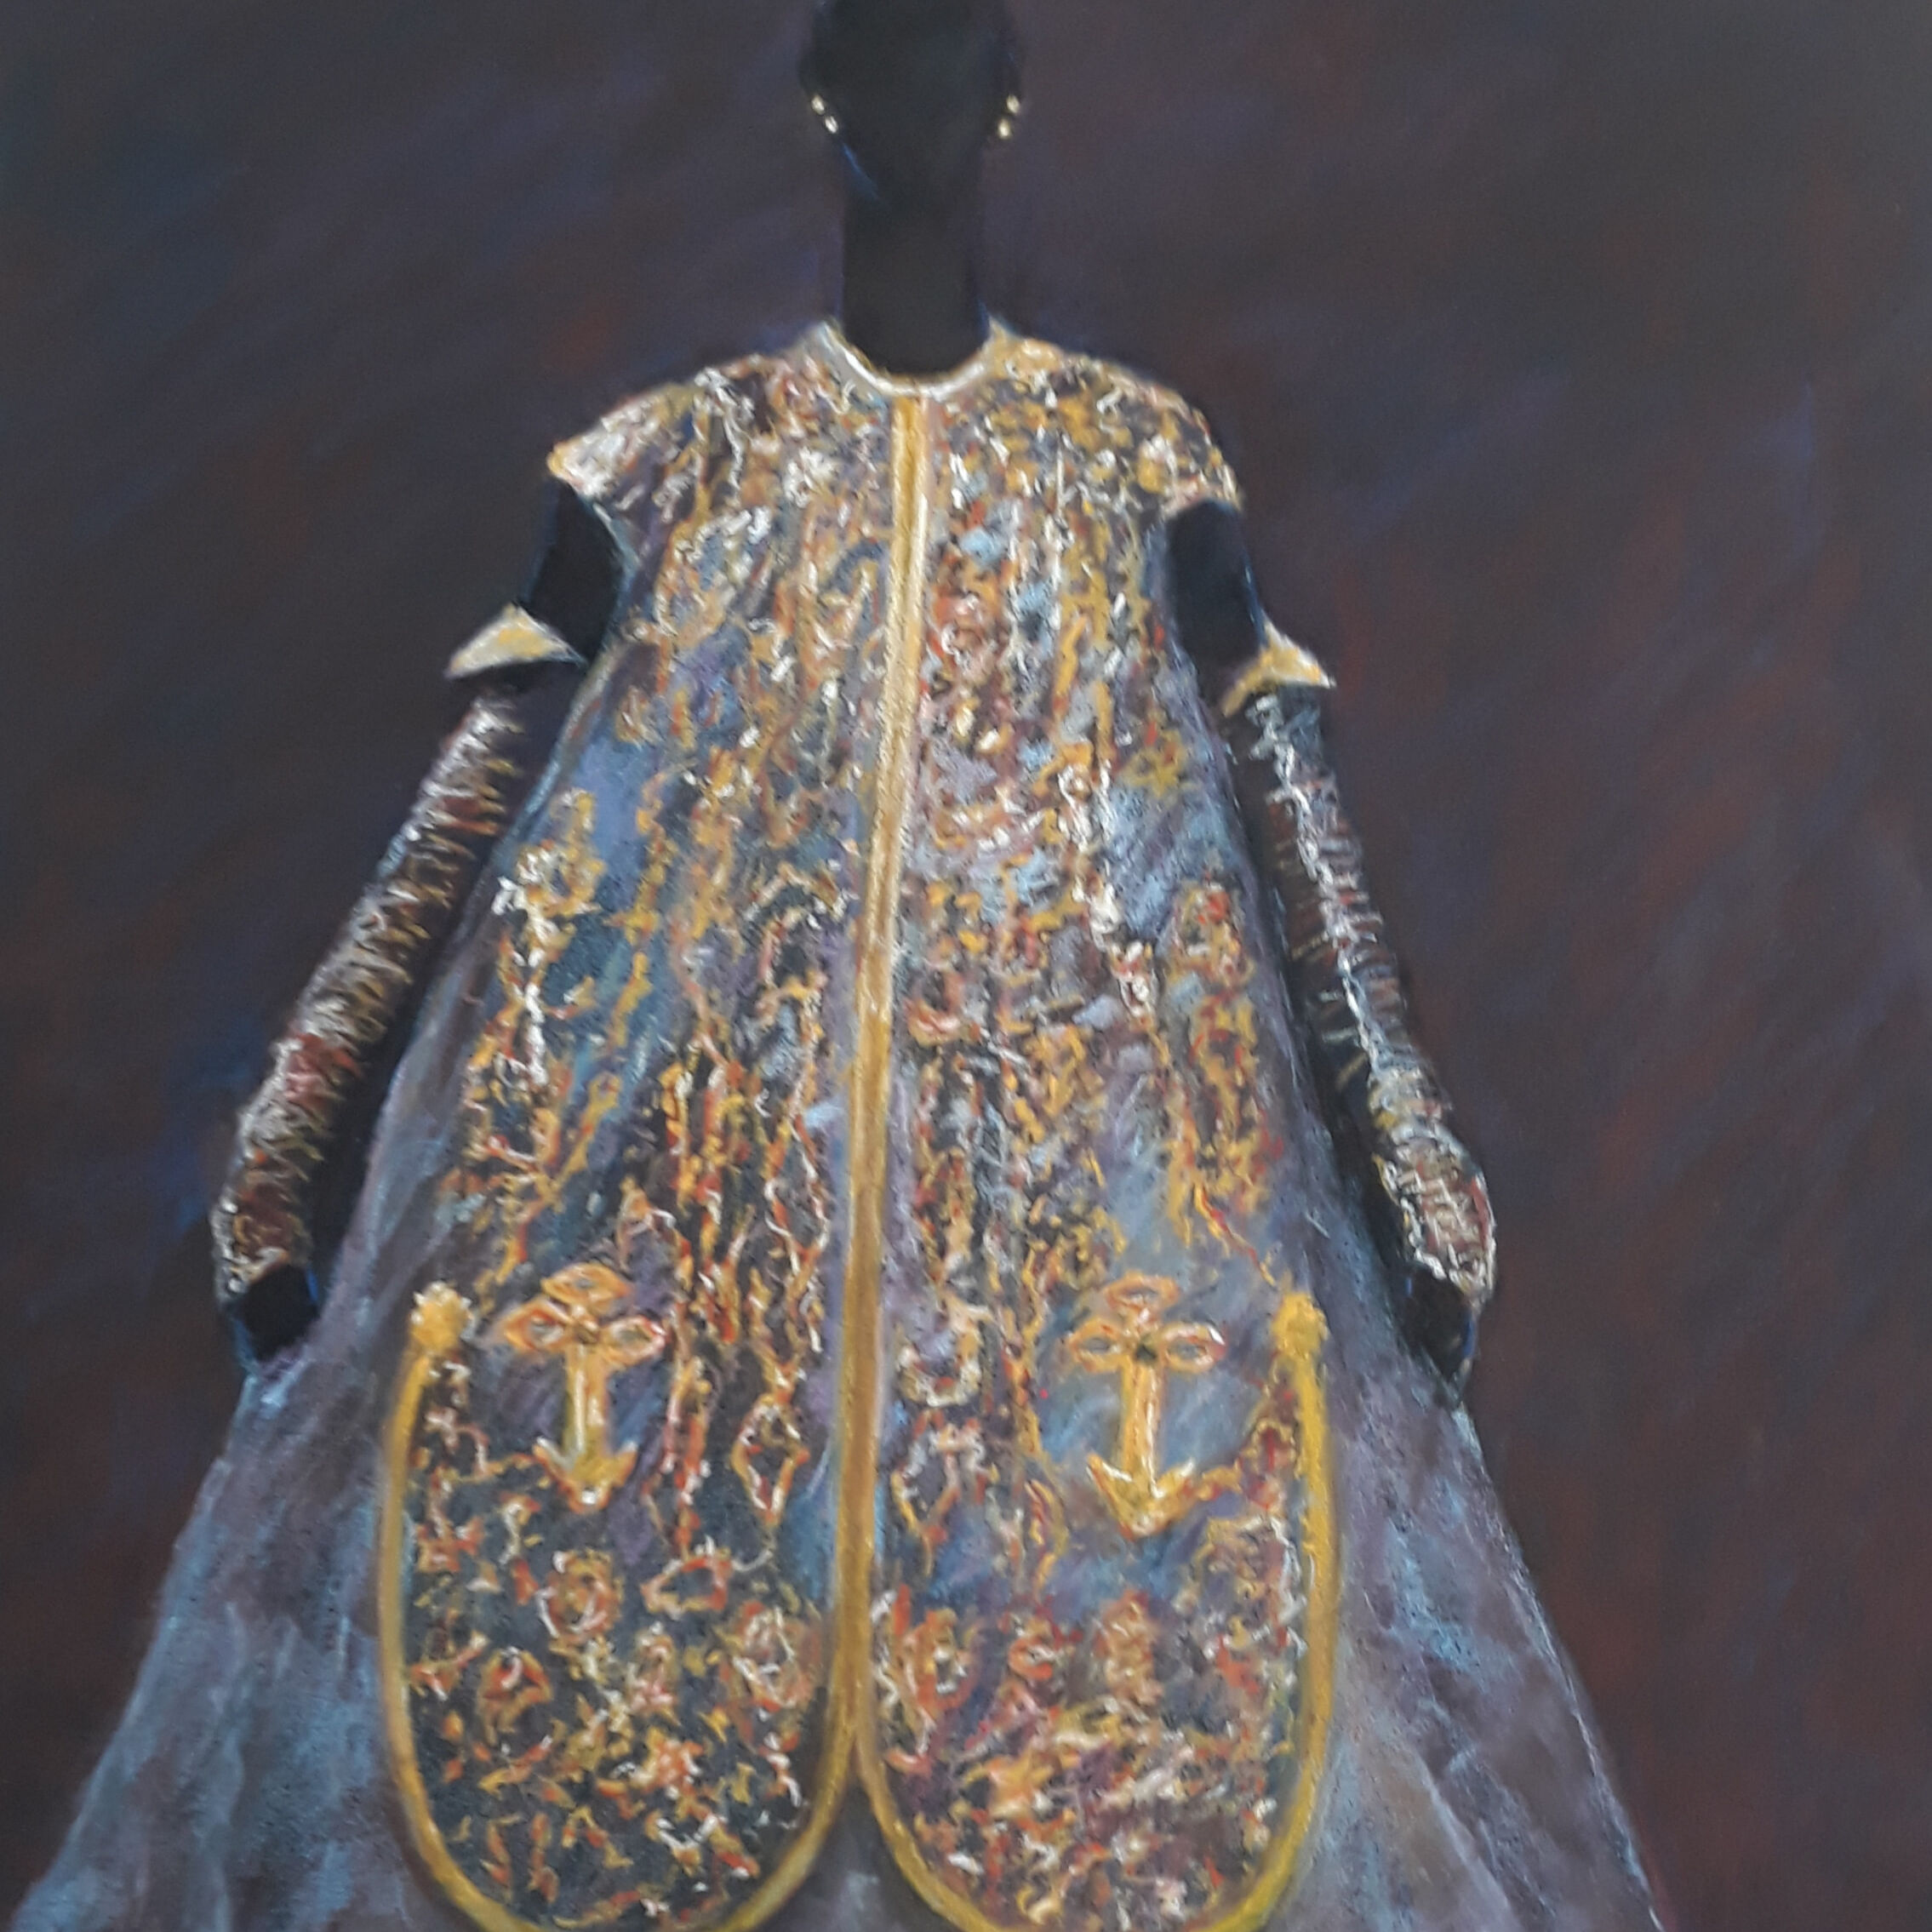 65_Helen Kelly_Haute Couture_Pastel